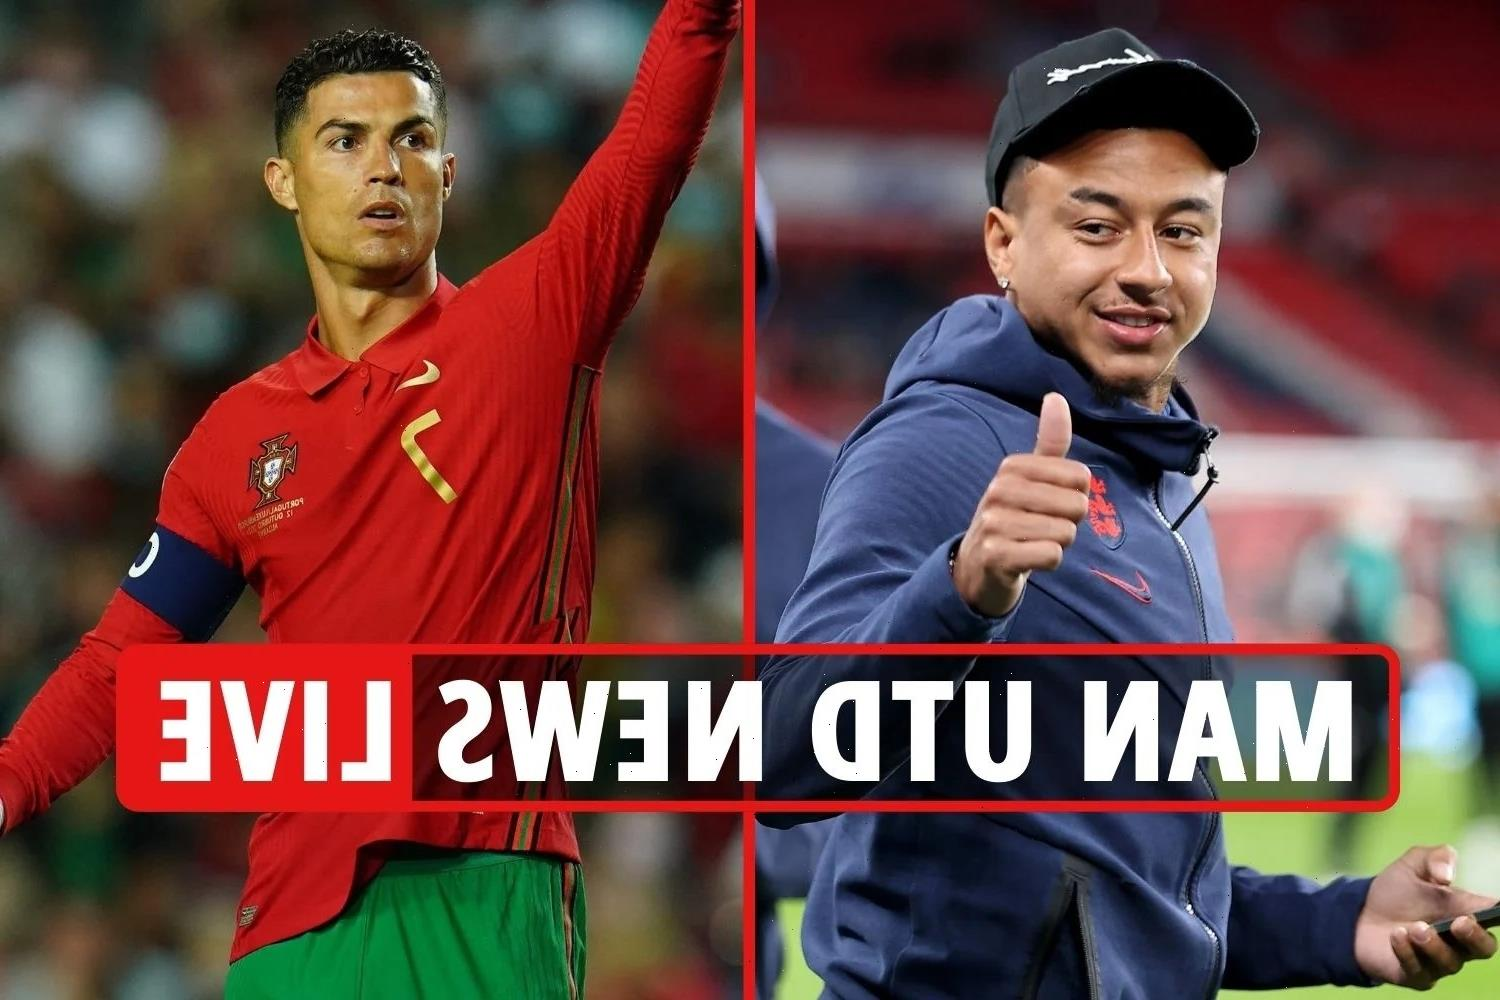 Man Utd news LIVE: Lingard to Barcelona or Milan, Cristiano Ronaldo signing may convince Pogba to stay – transfer latest